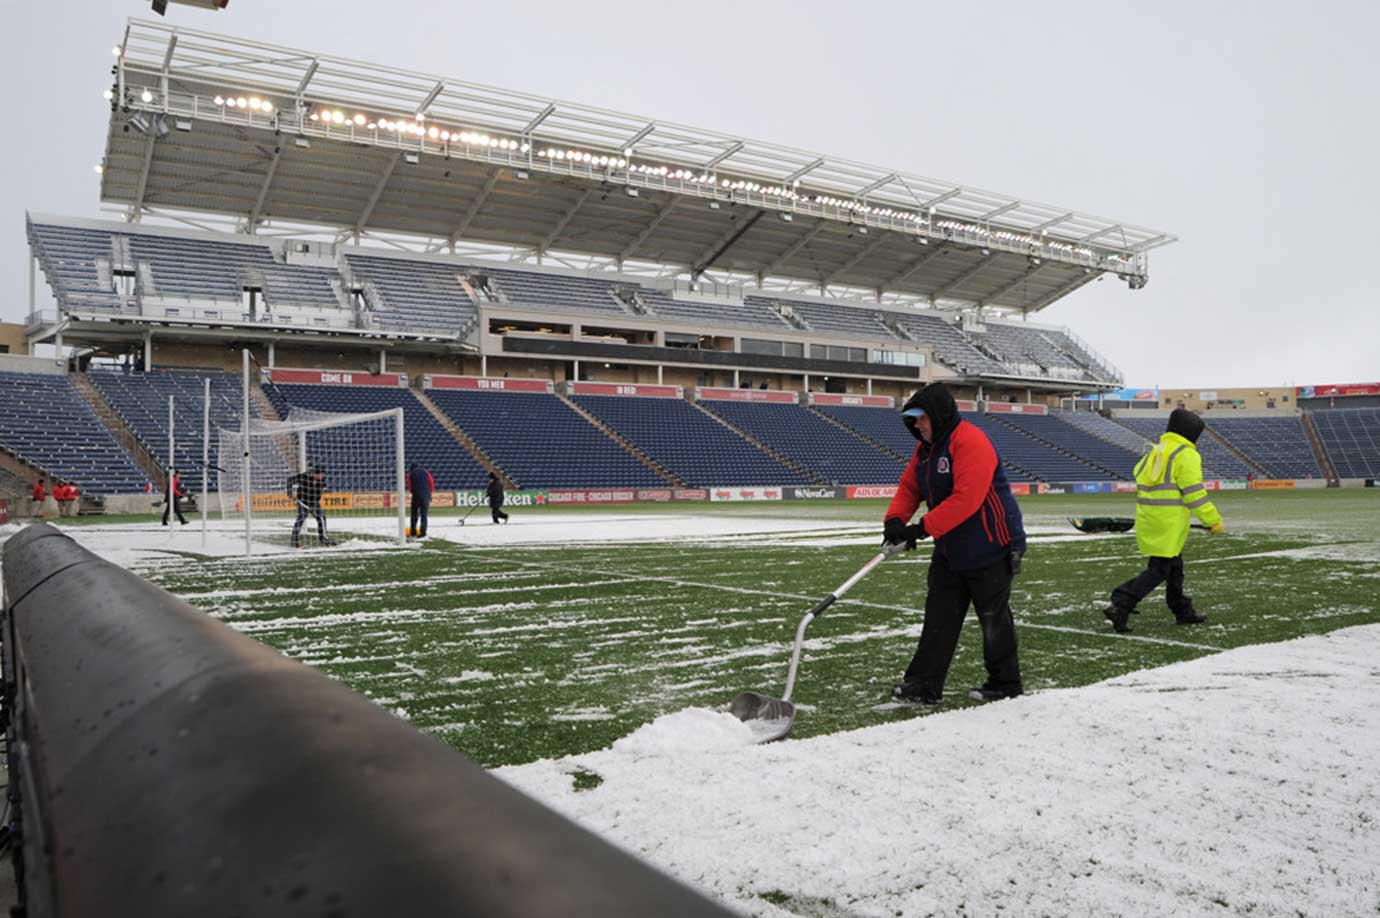 Workers clear the field prior to a game between the Philadelphia Union and Chicago Fire in Bridgeview, Ill.